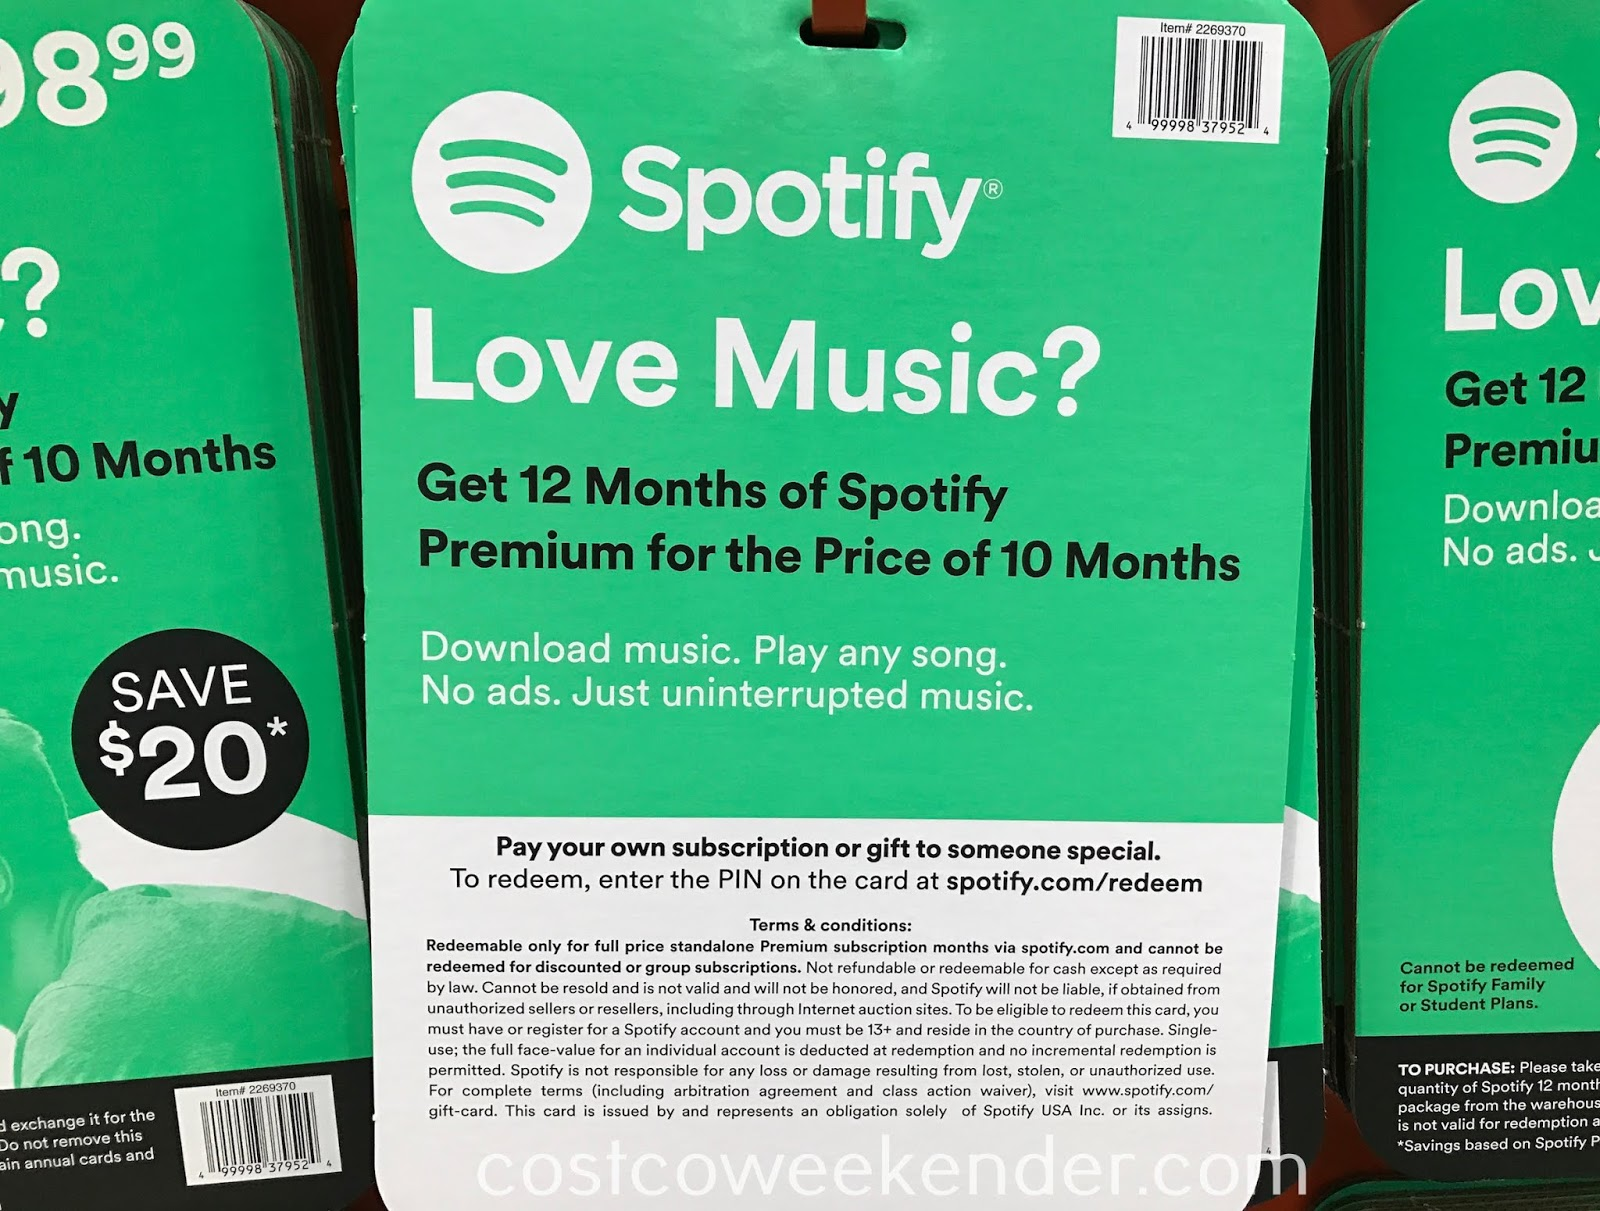 Costco 1271992 - Spotify 12-month Premium Subscription: great for any music lover